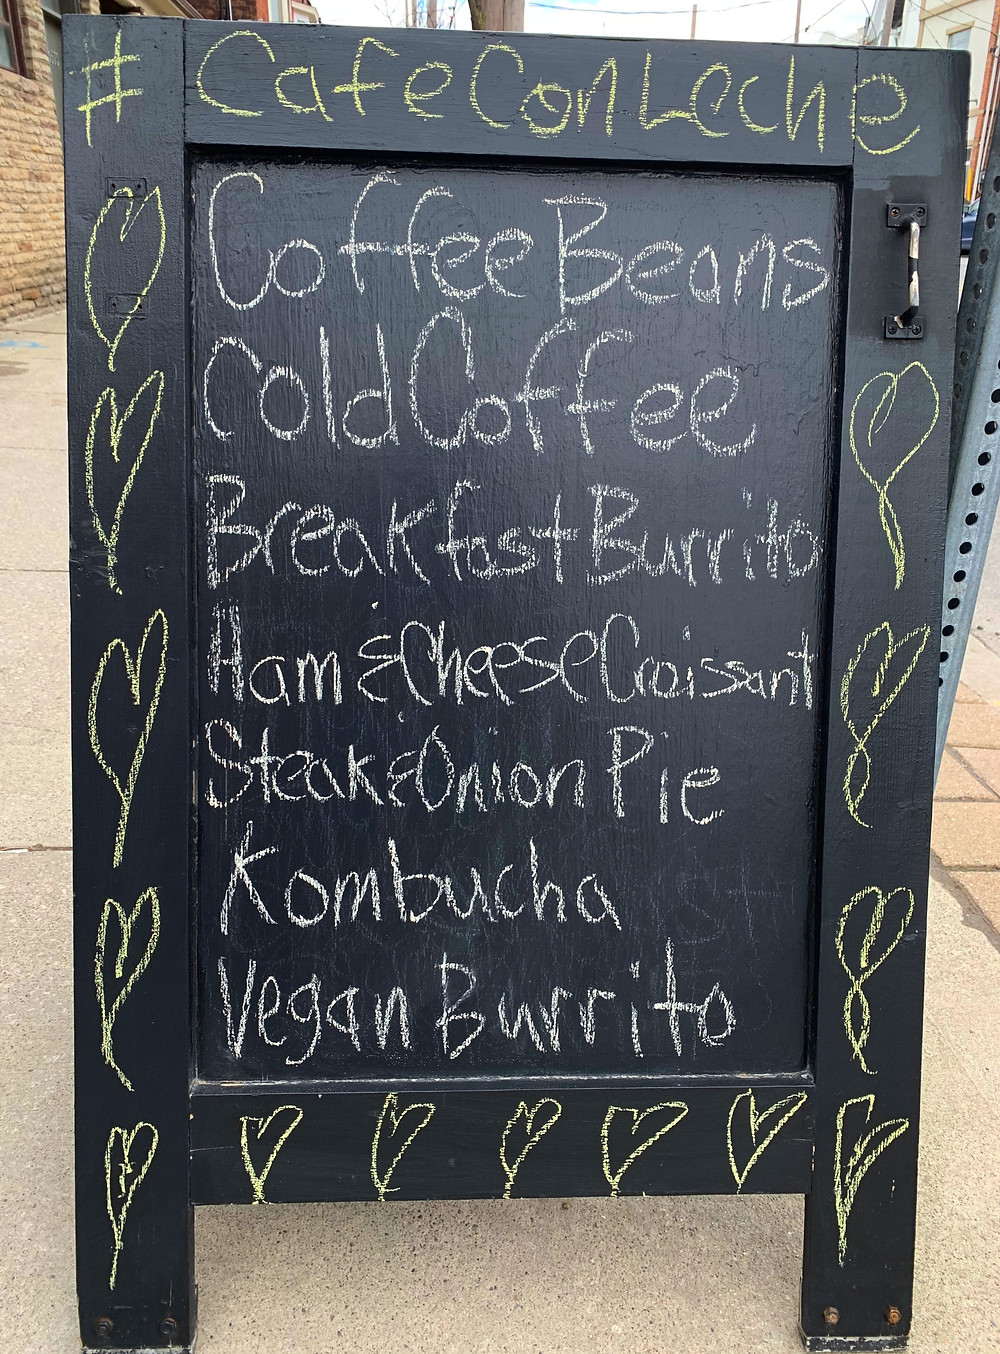 Cafe Con Leche Espresso Bar menu